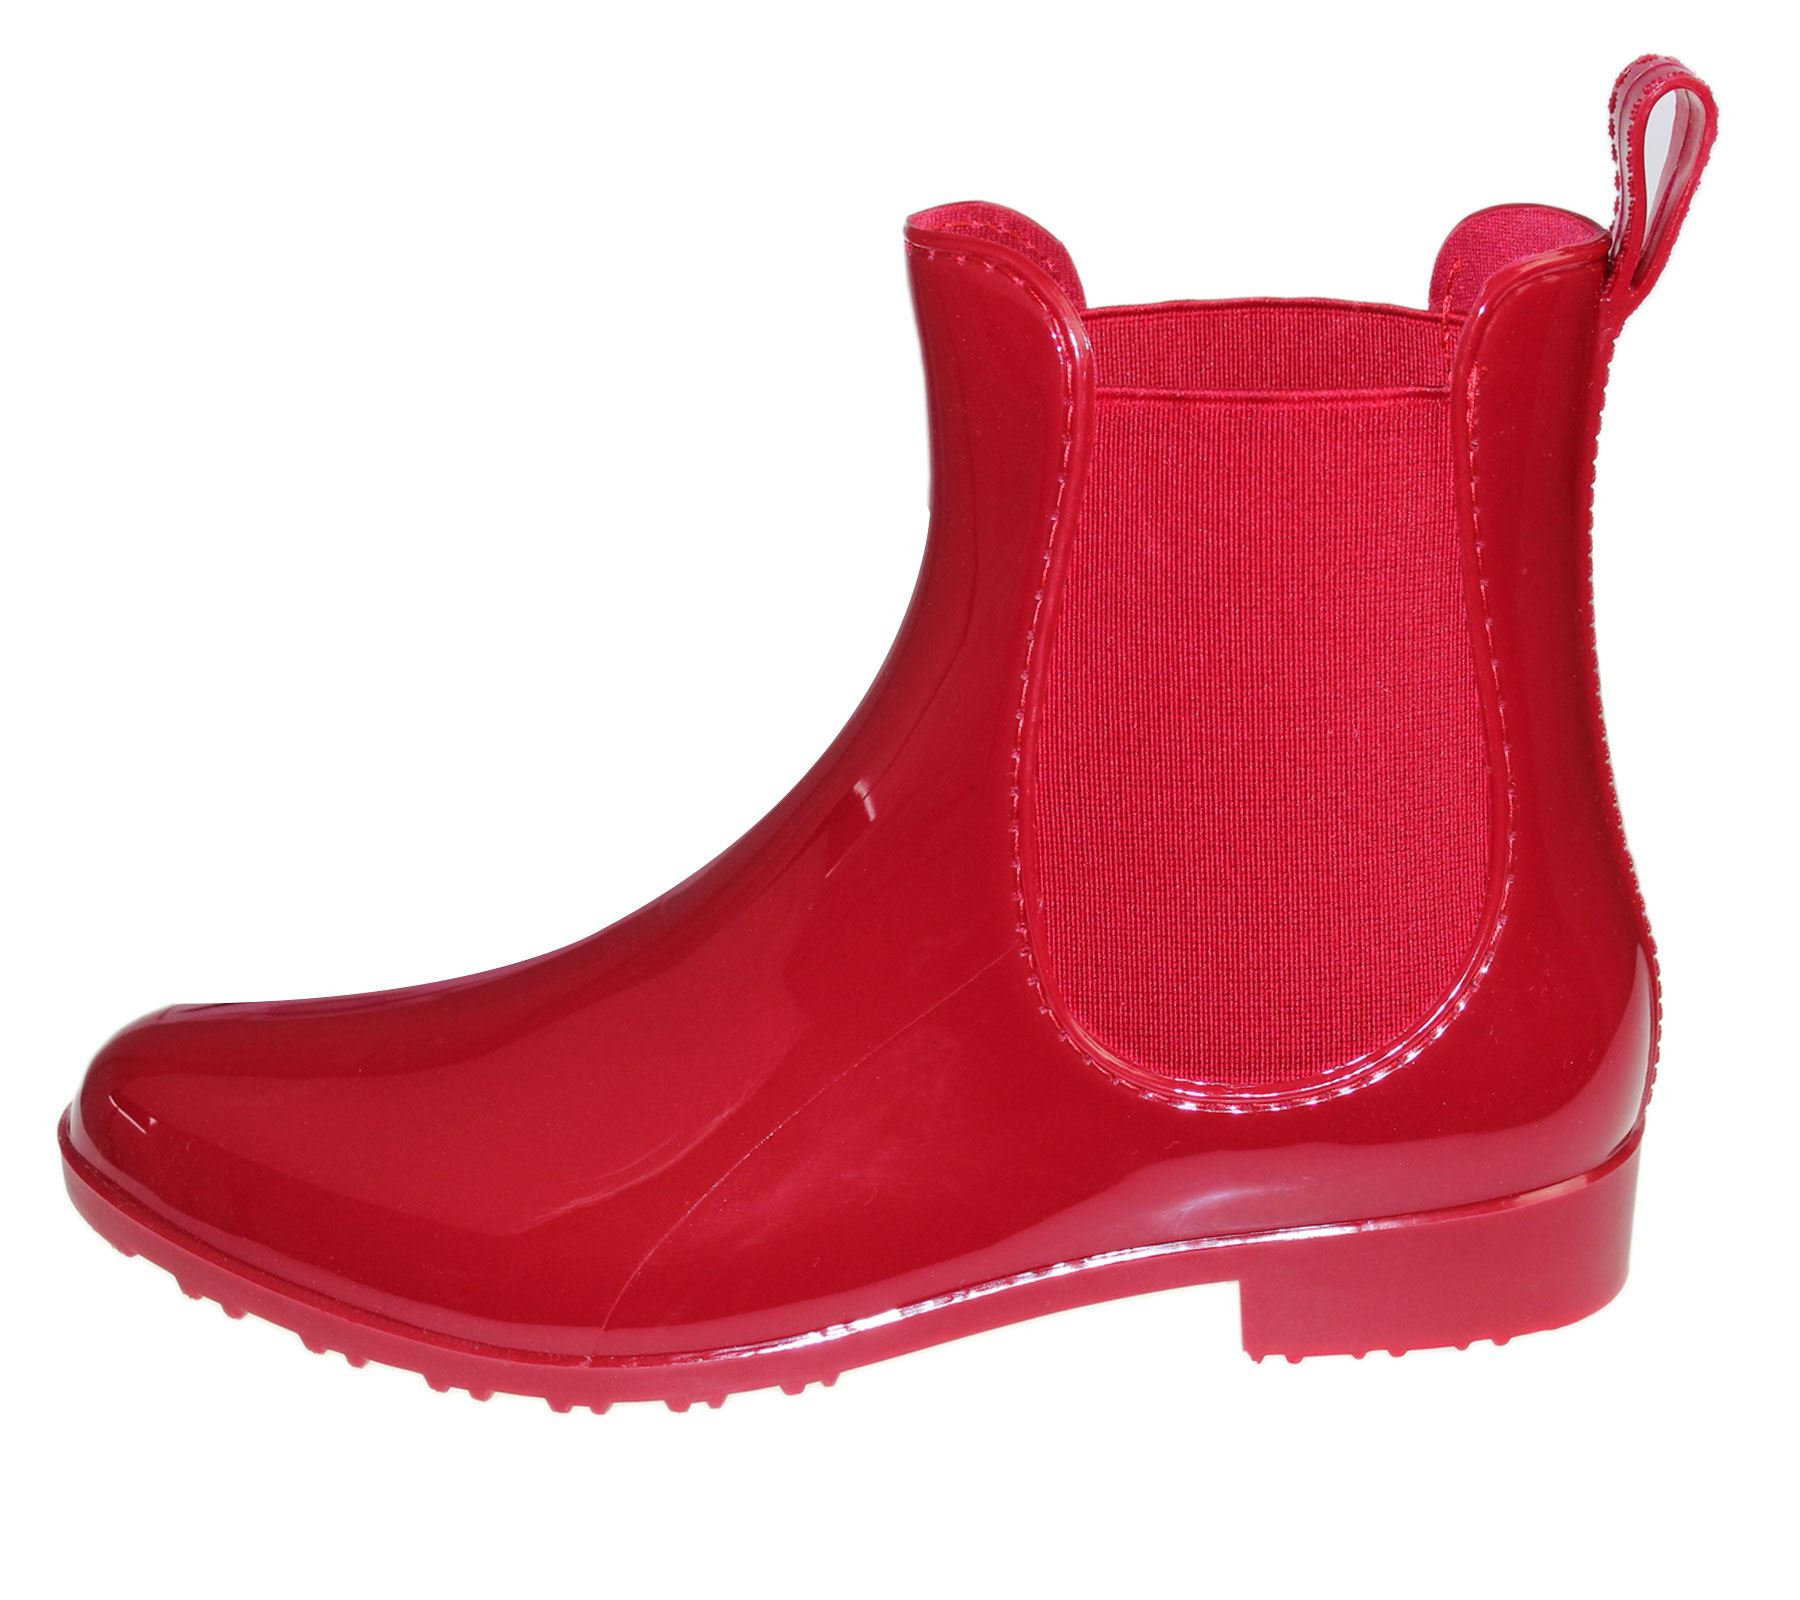 Womens Wellington Ankle Boots Ladies Patent Gust Wellies Rain Snow Boots Jelly Chelsea Shoes